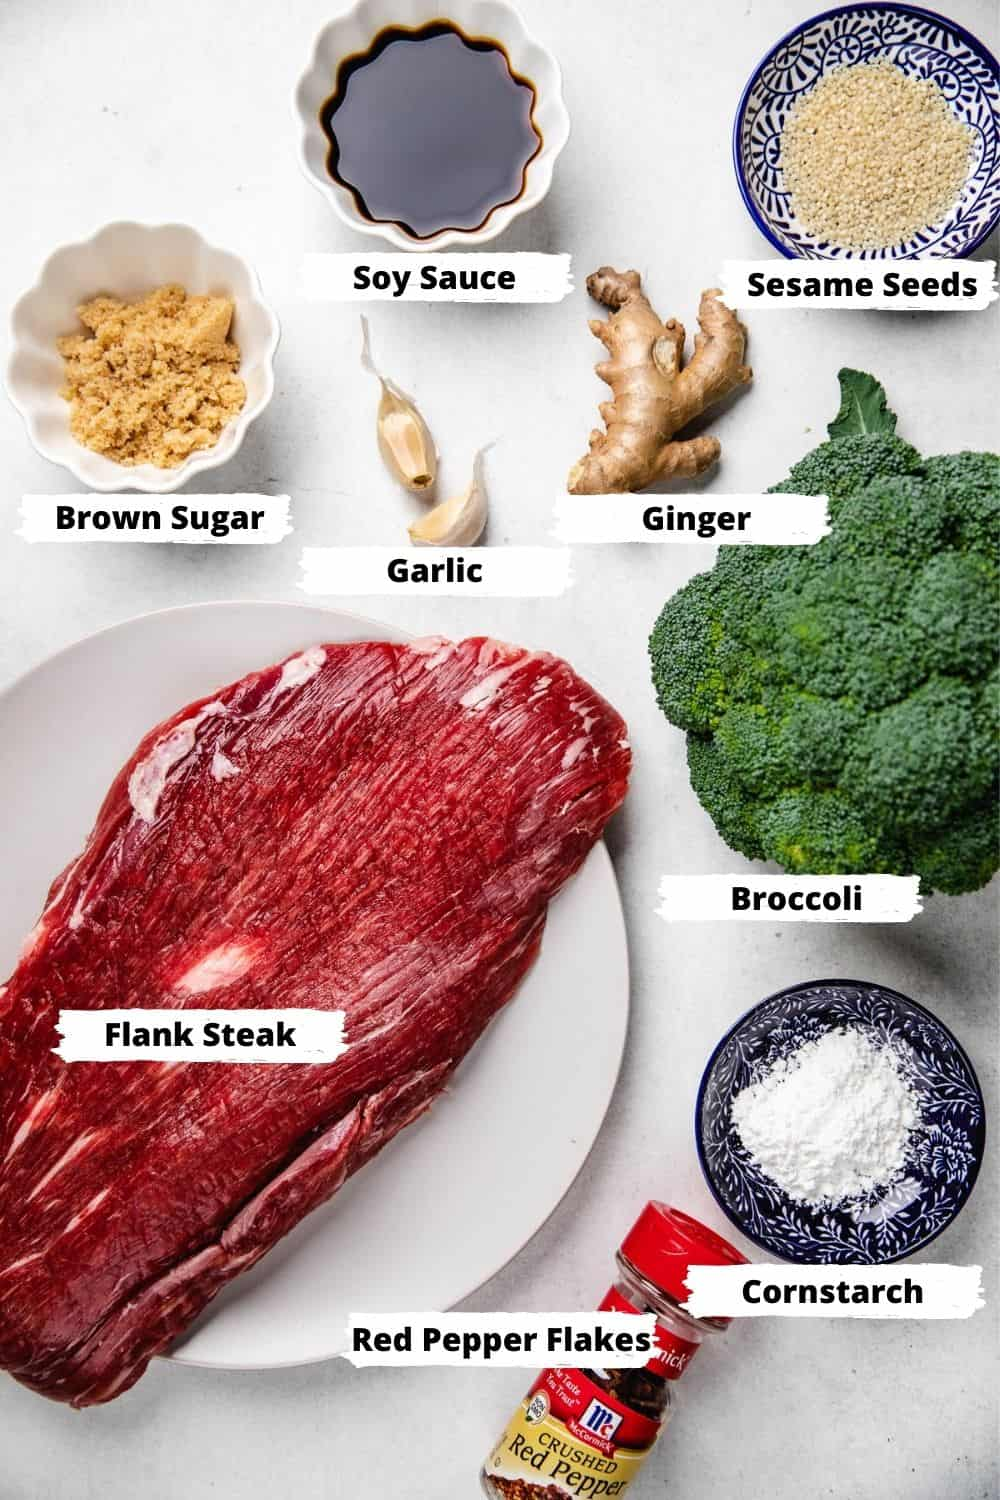 Ingredients for Beef and Broccoli on a table.